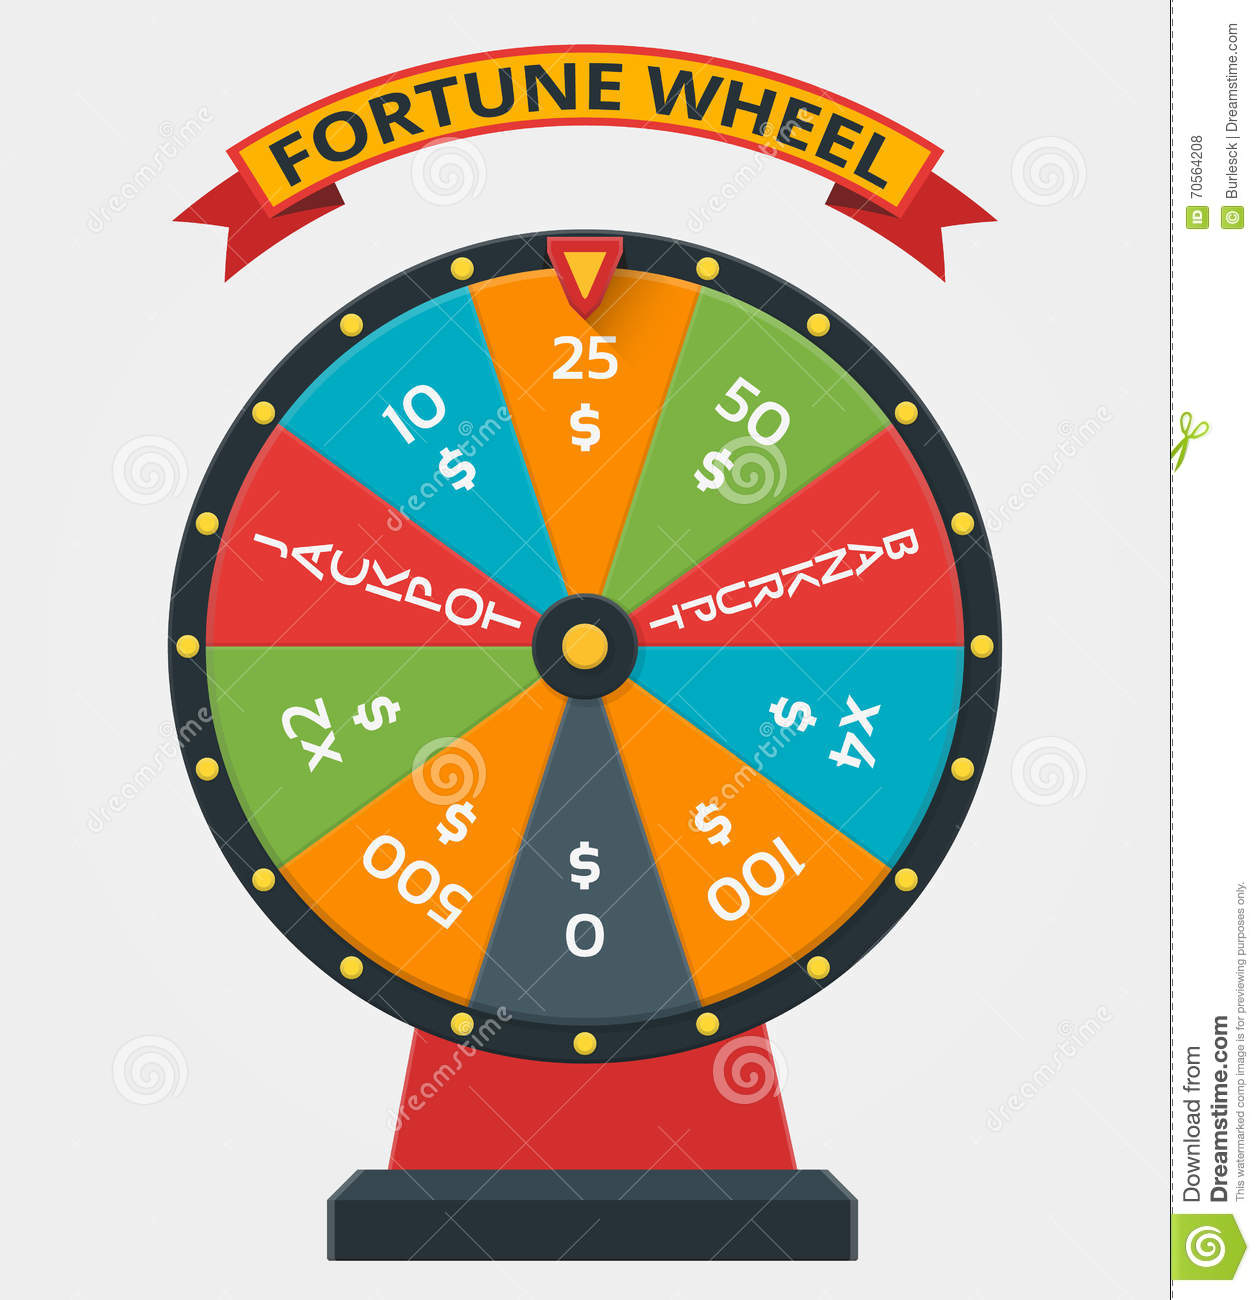 Fortune Wheel In Flat Vector Style Stock Vector - Image ...